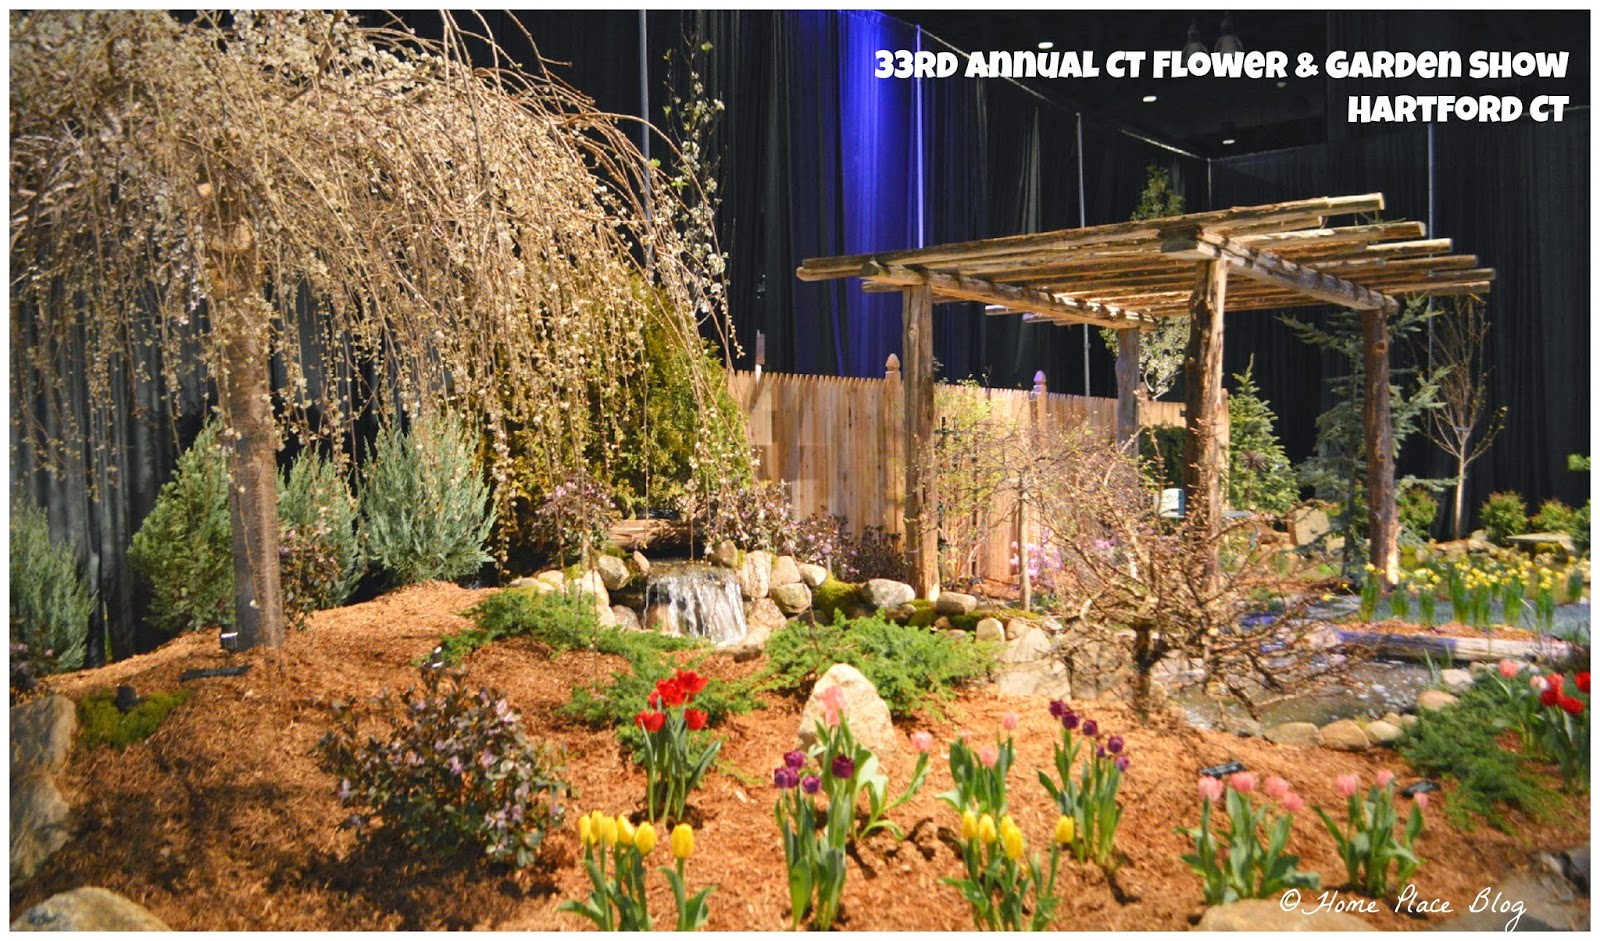 Home Place: The 33rd Annual CT Flower and Garden Show - Hartford CT 2014